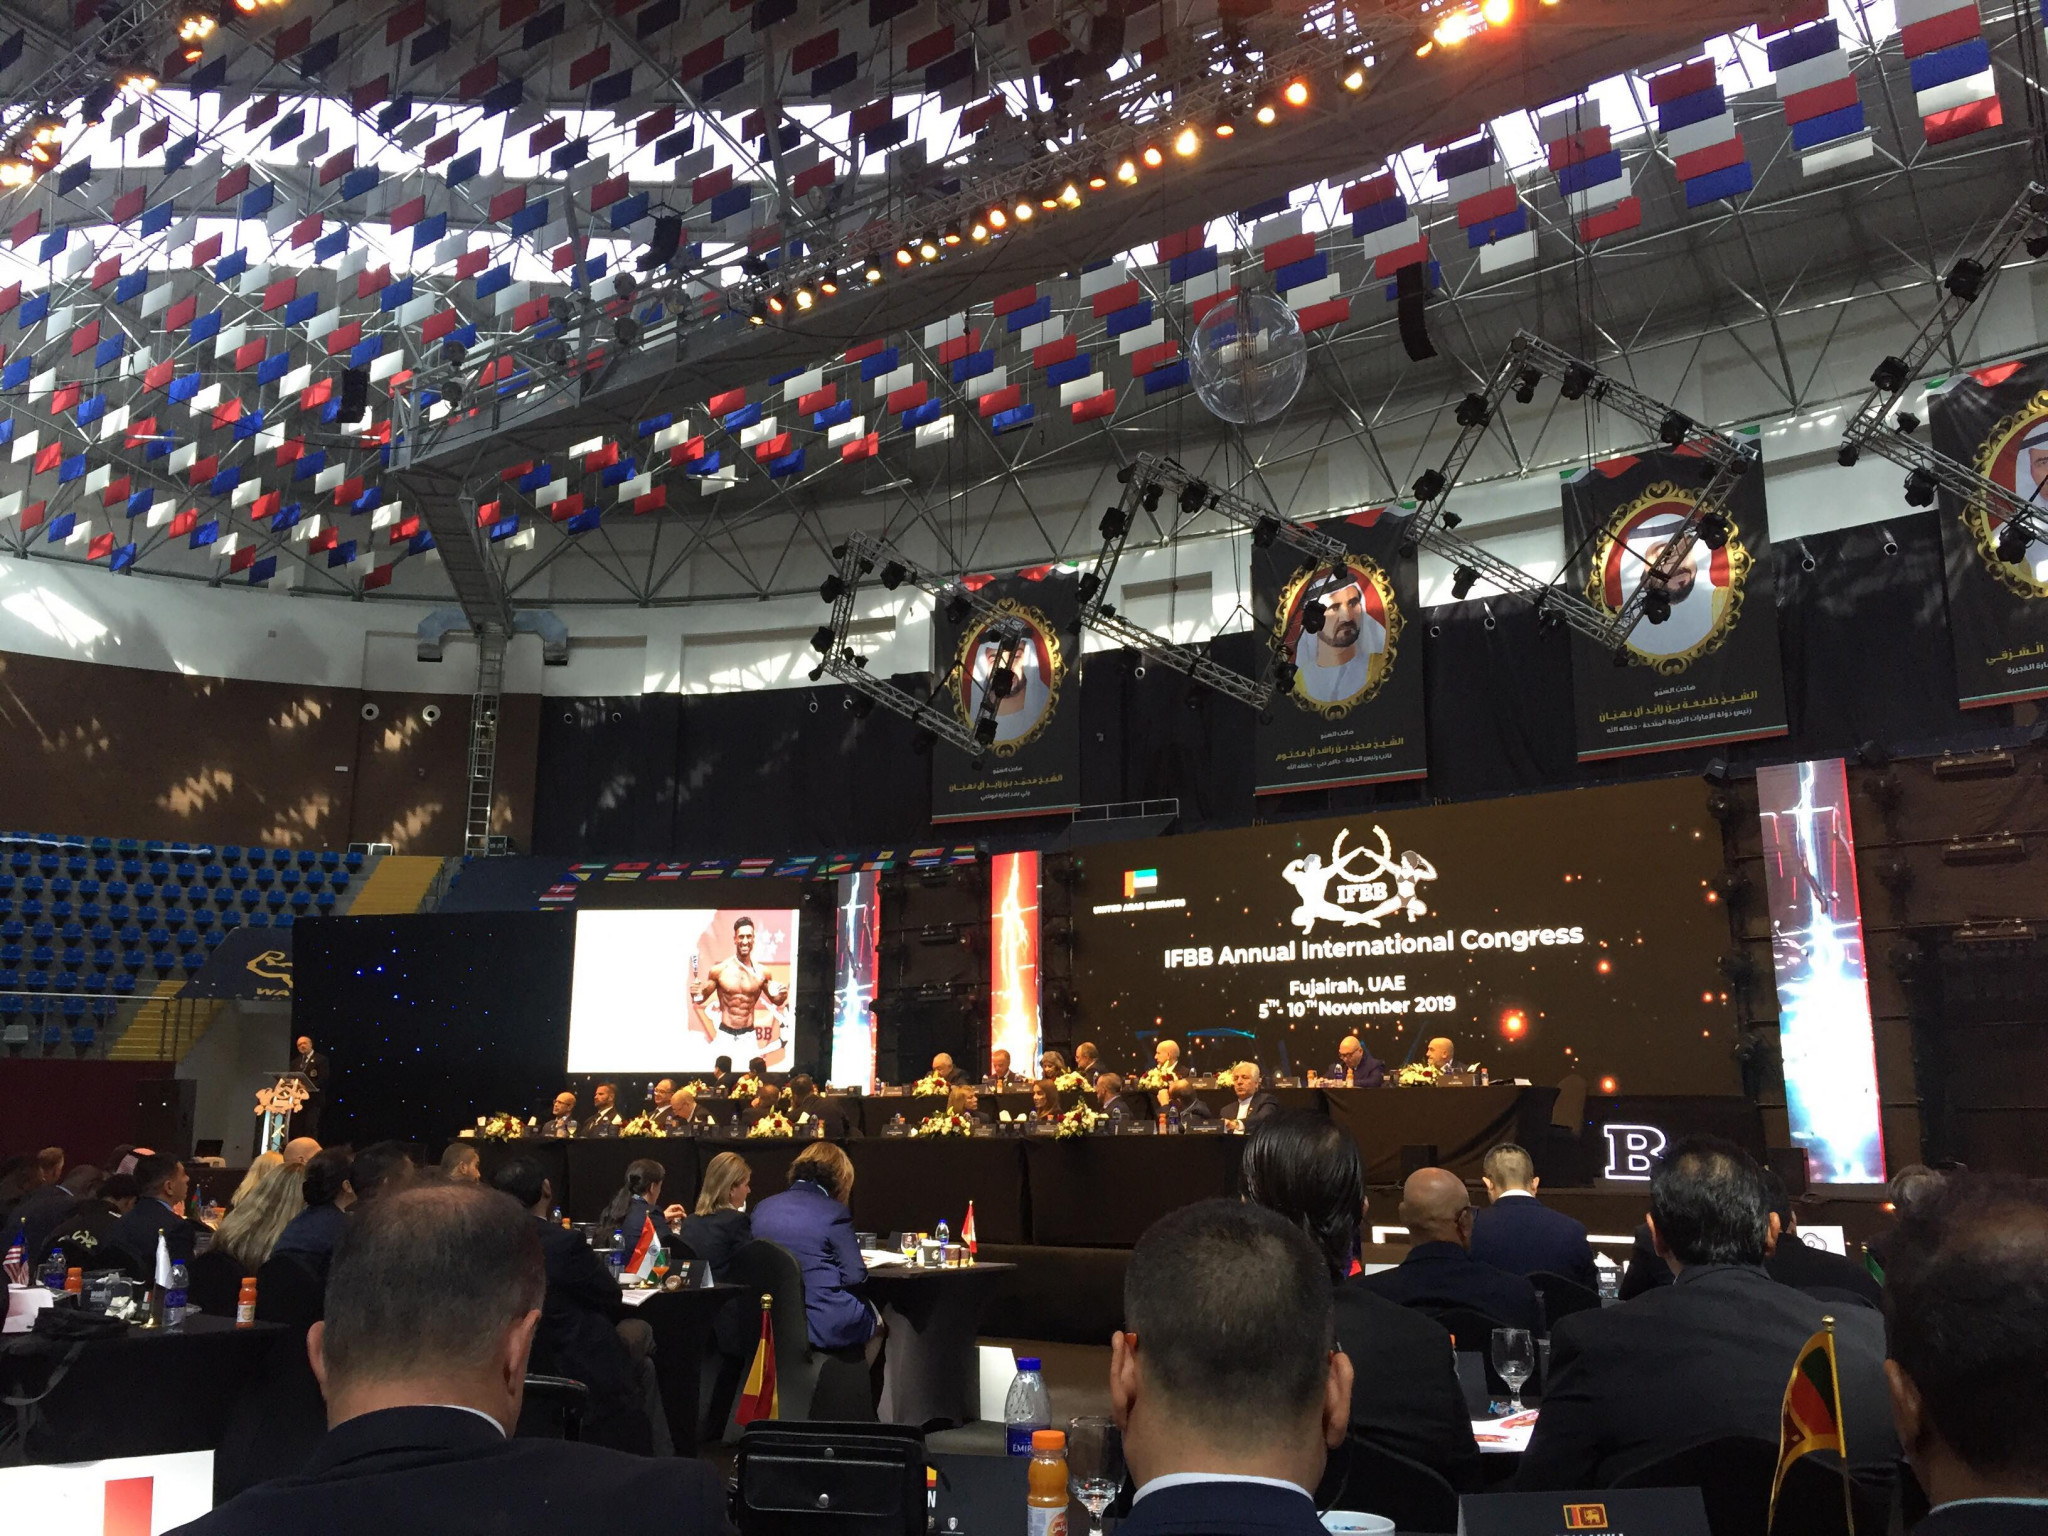 World Power Games confirmed at IFBB World Congress